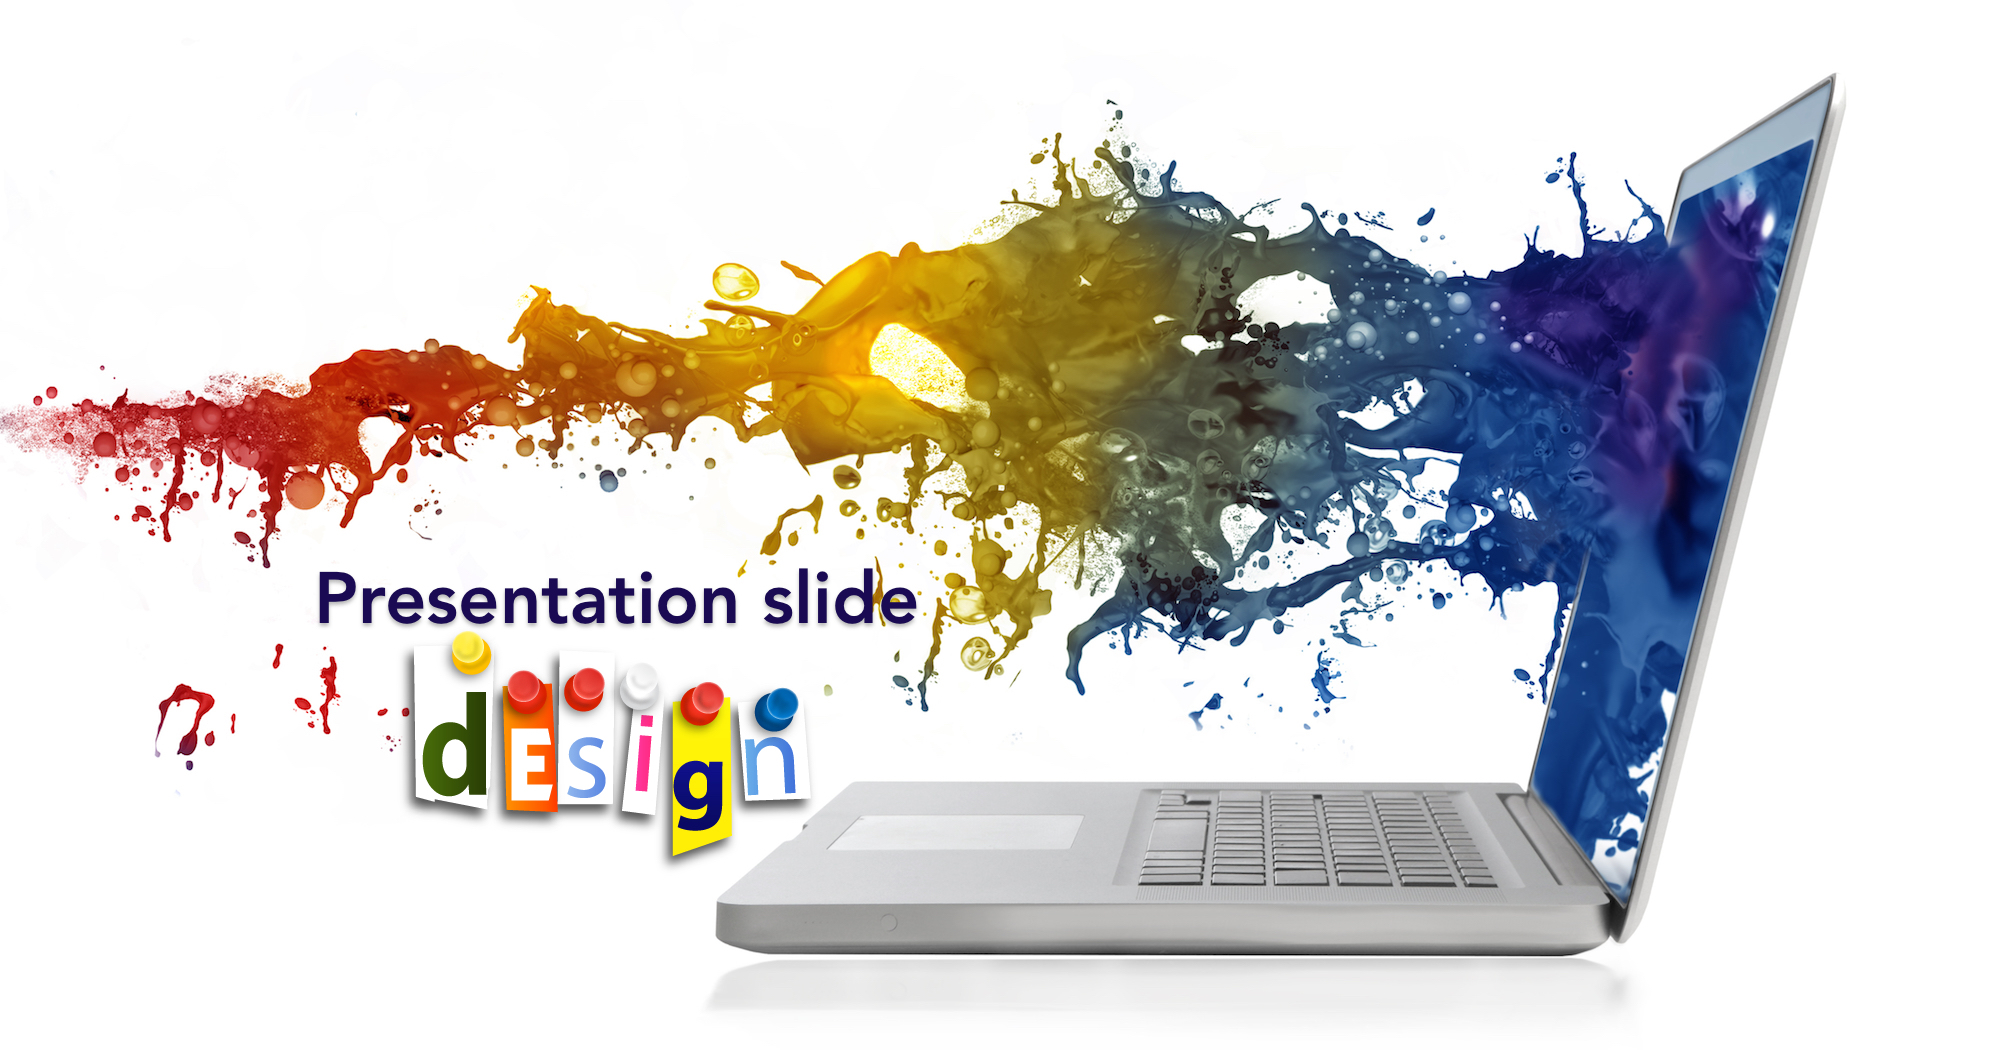 presentation slide design and image selection